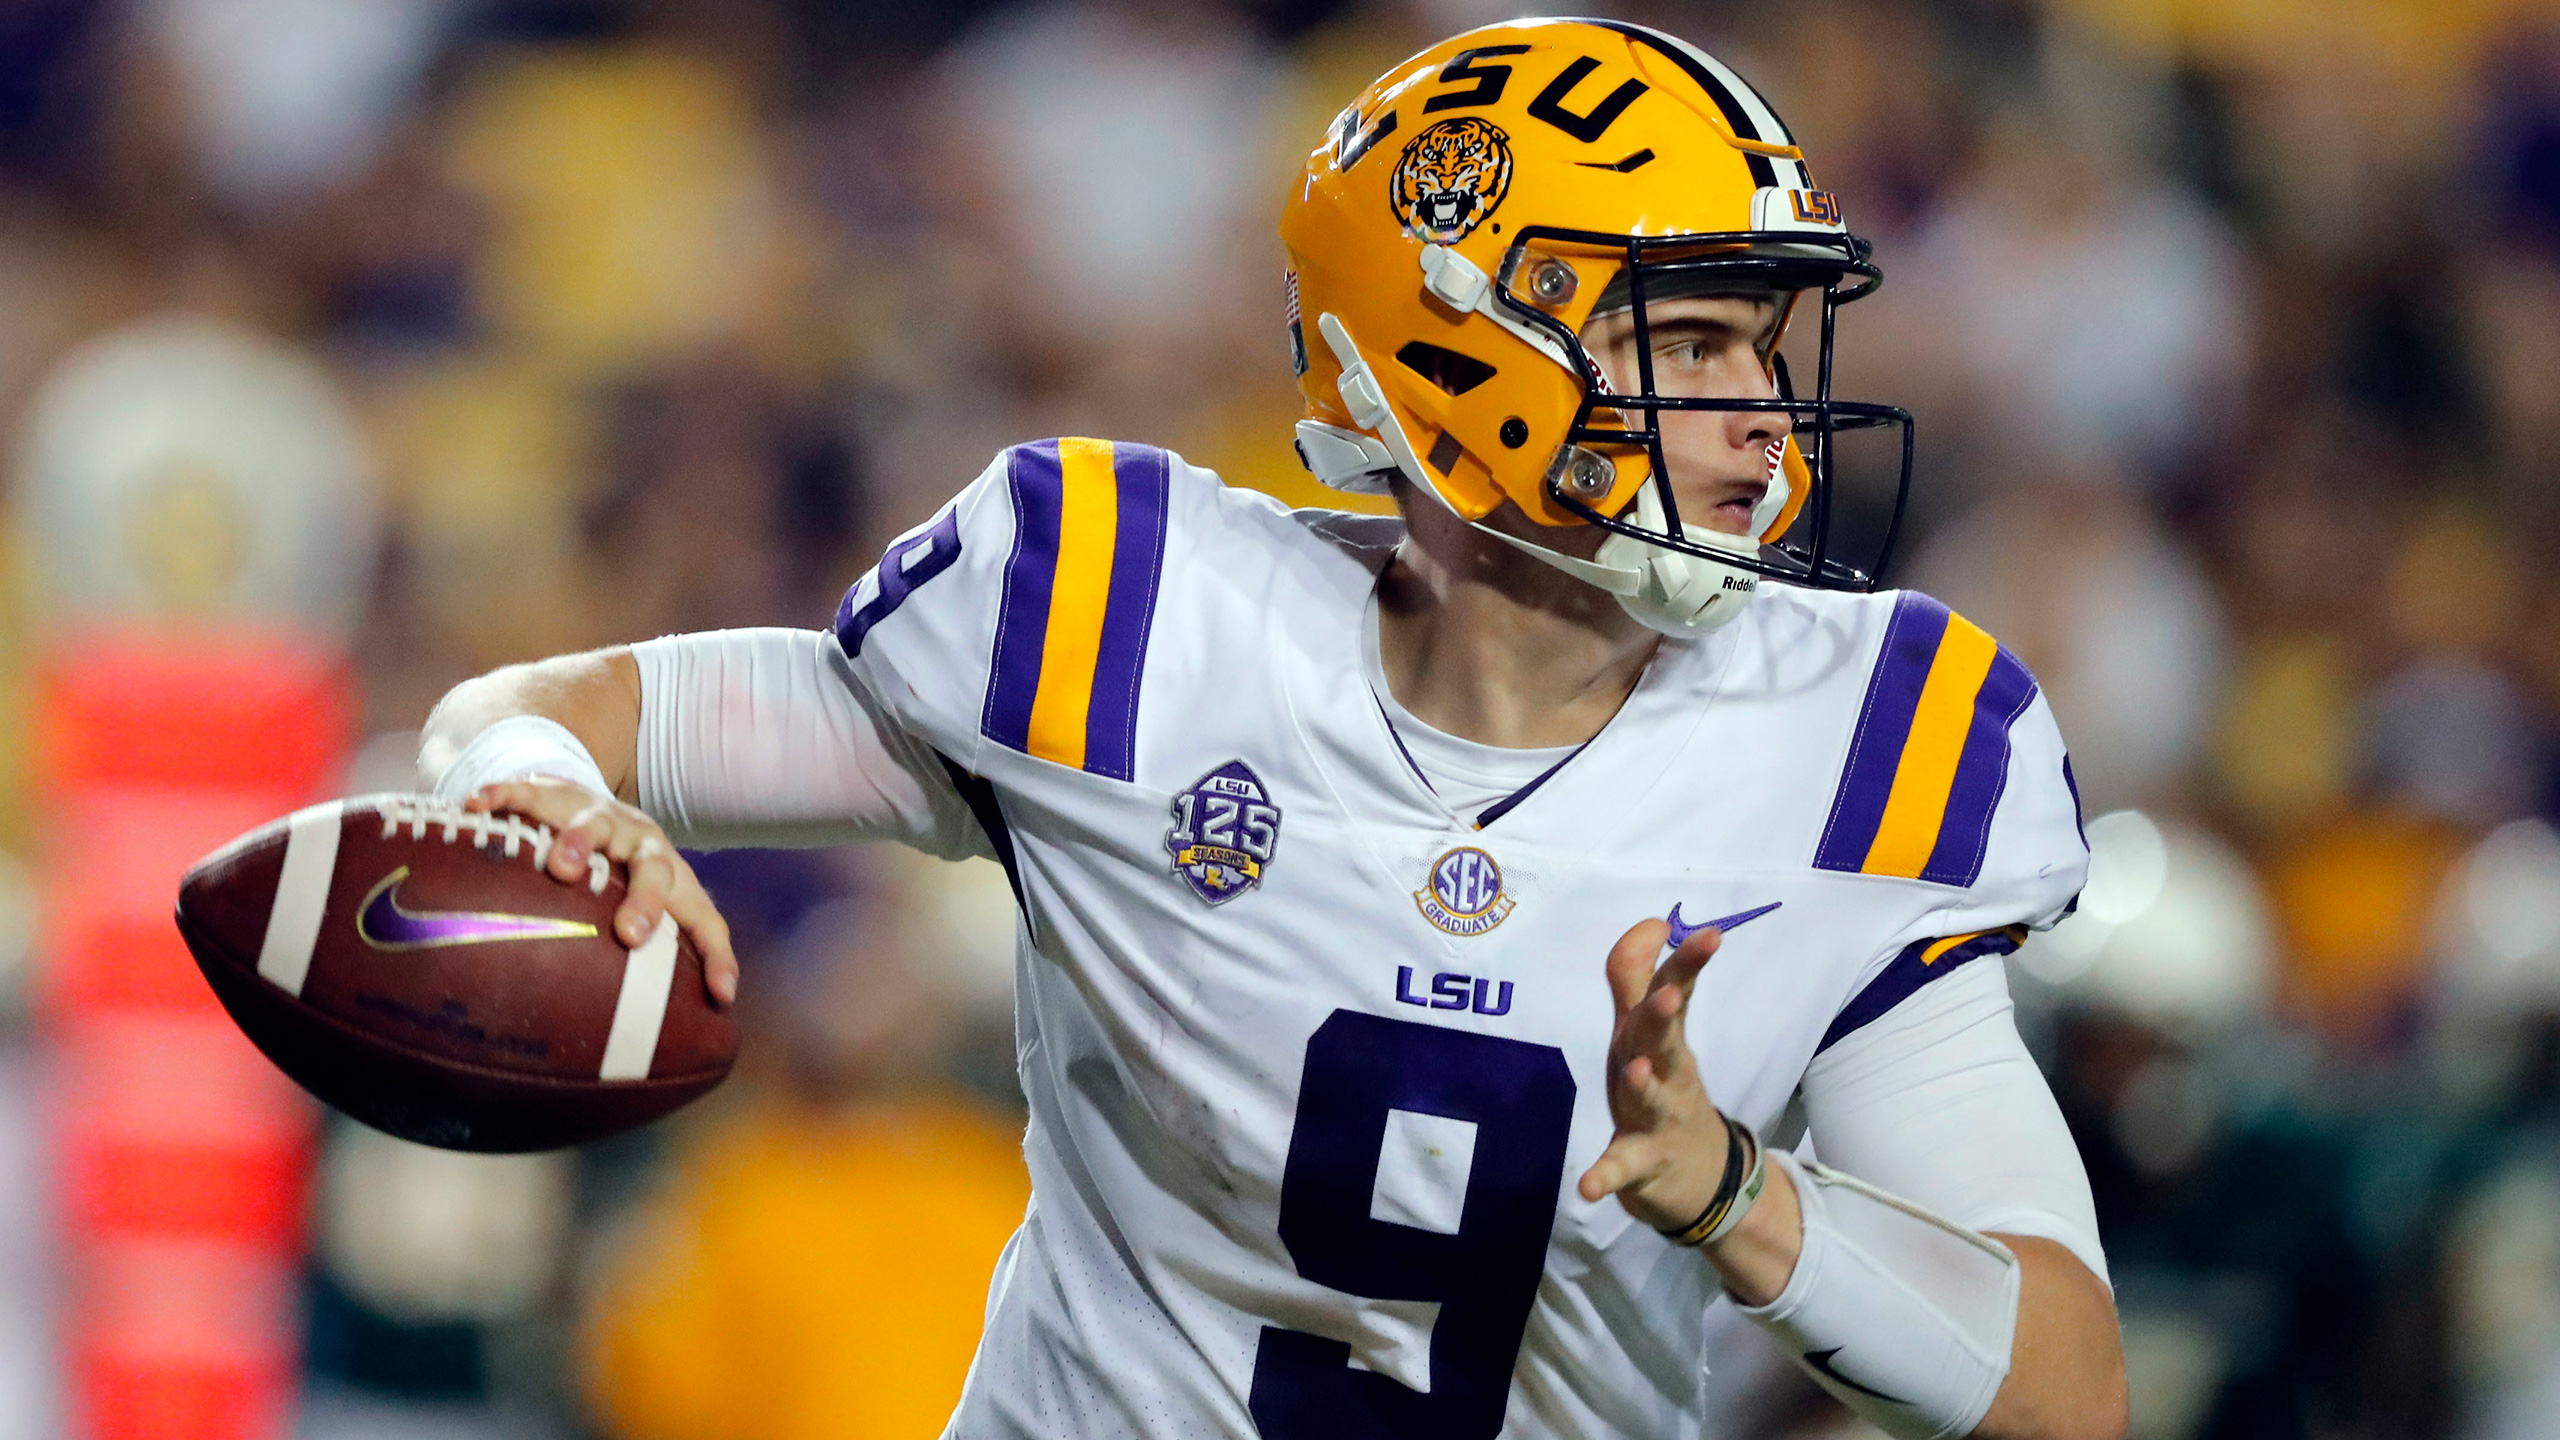 Louisiana Tech vs. #6 LSU (Football)